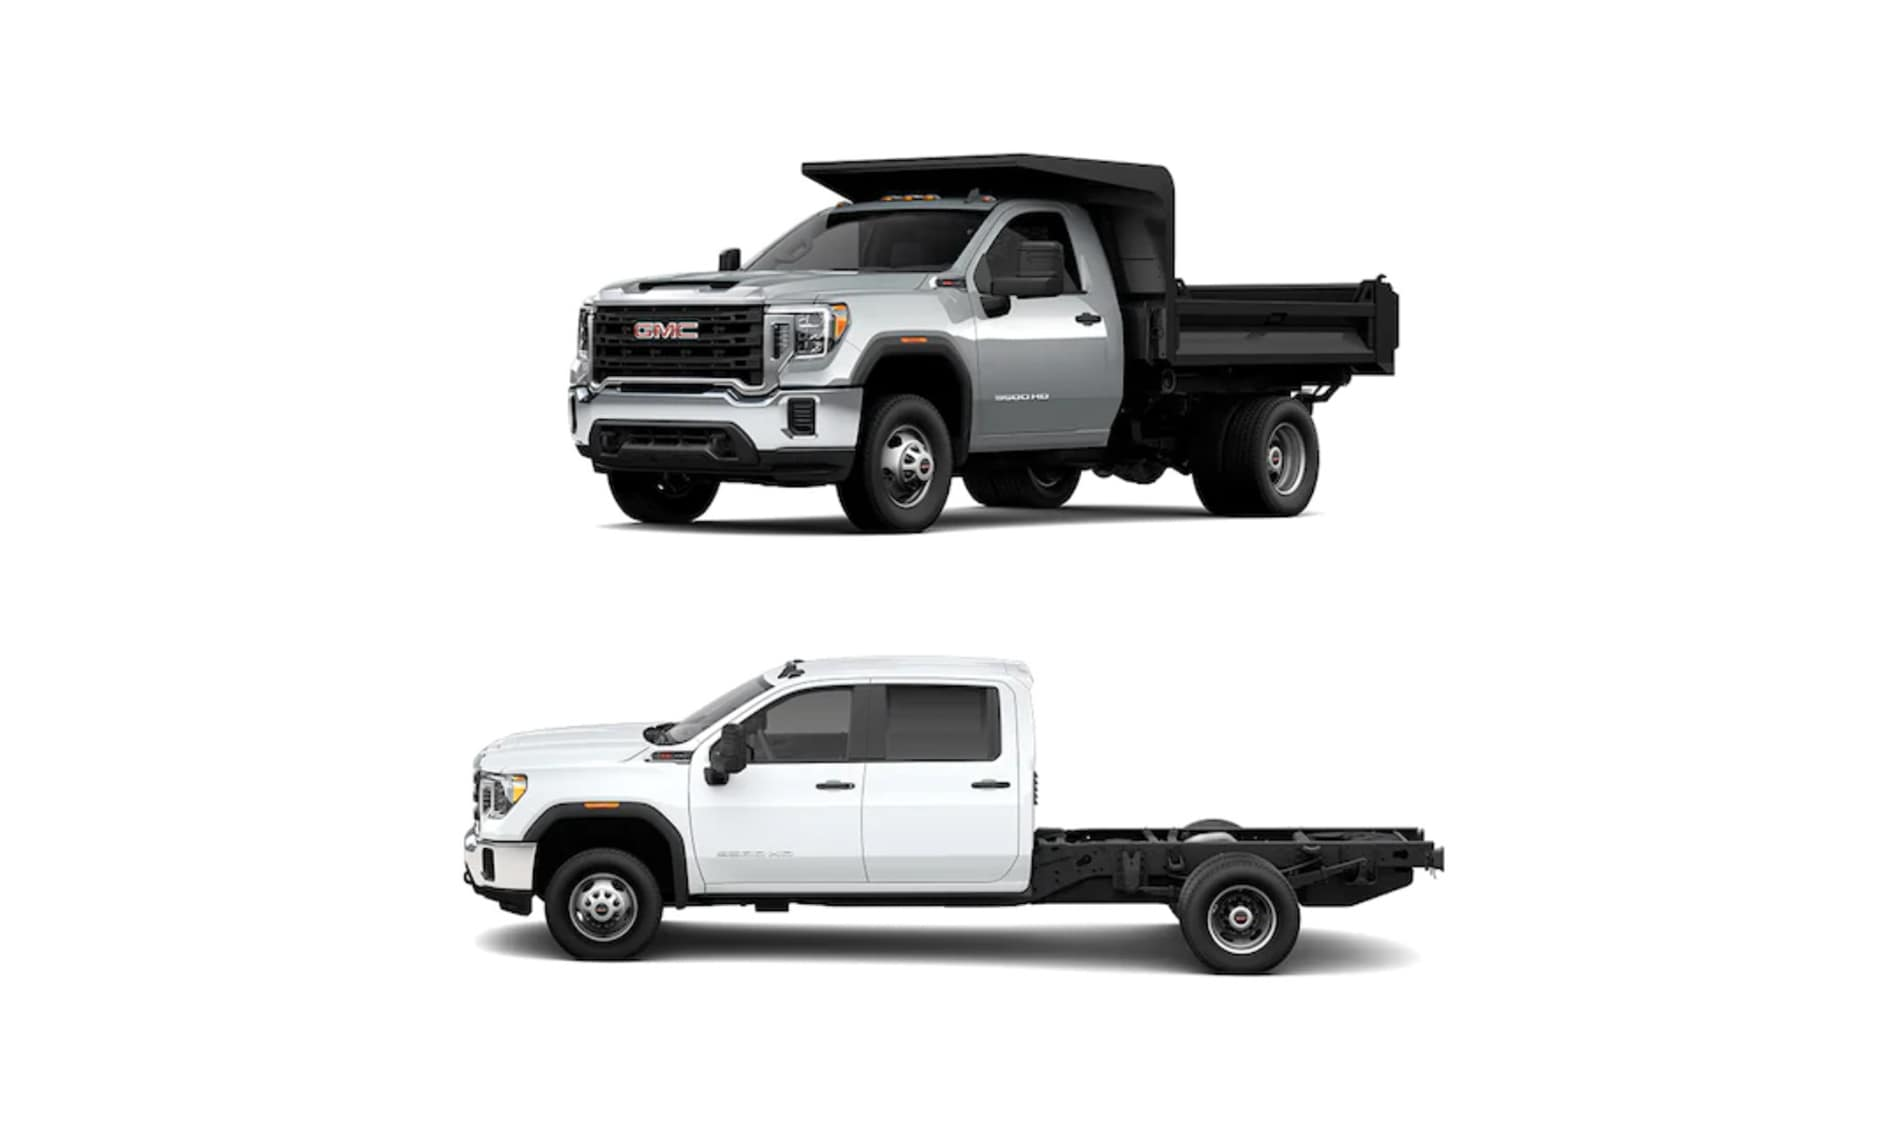 2021 GMC Sierra 3500 HD Chassis Cab in St. Louis